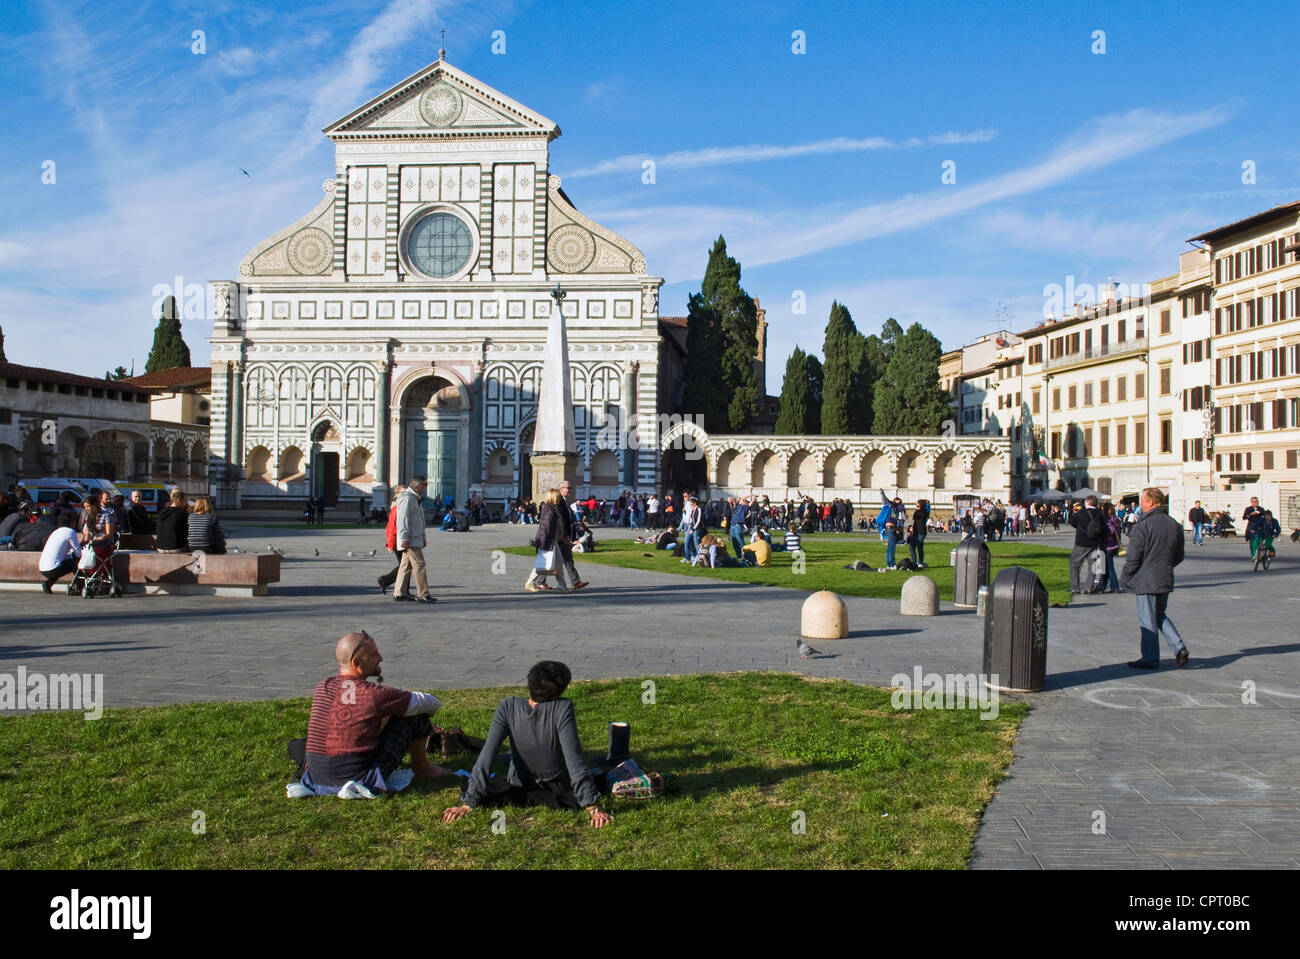 Church of Santa Maria Novella, Firenze, UNESCO World Heritage Site, Tuscany, Italy - Stock Image